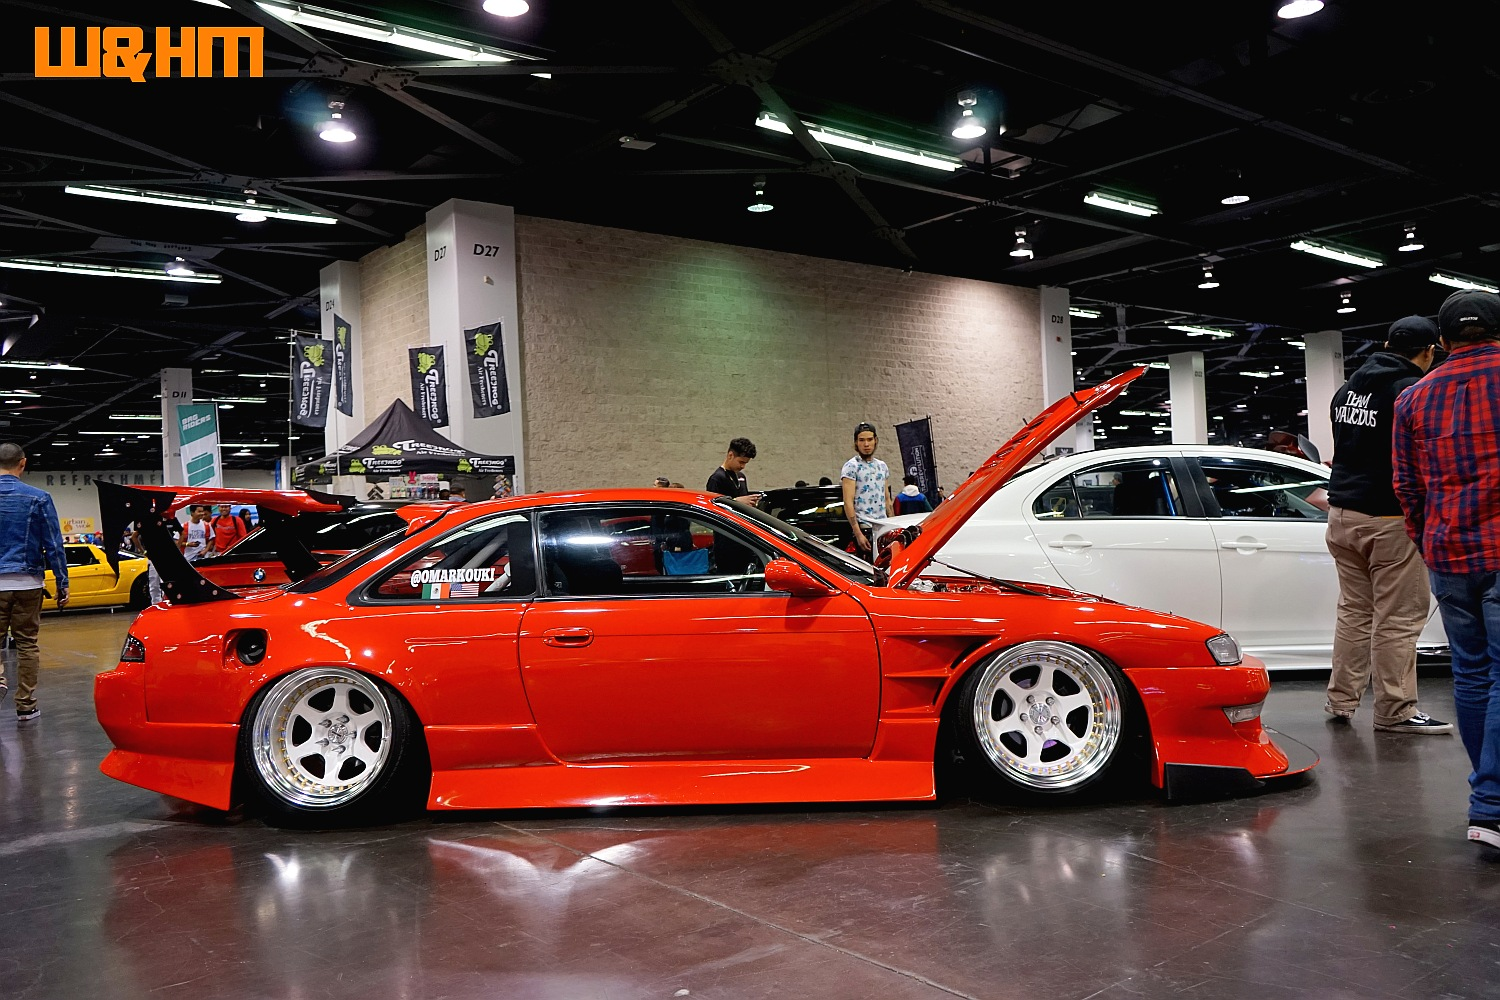 7f65d1cc1fa6 Wheels and Heels Magazine Cars   OMARKOUKI Red Hot Cool Ride Show ...